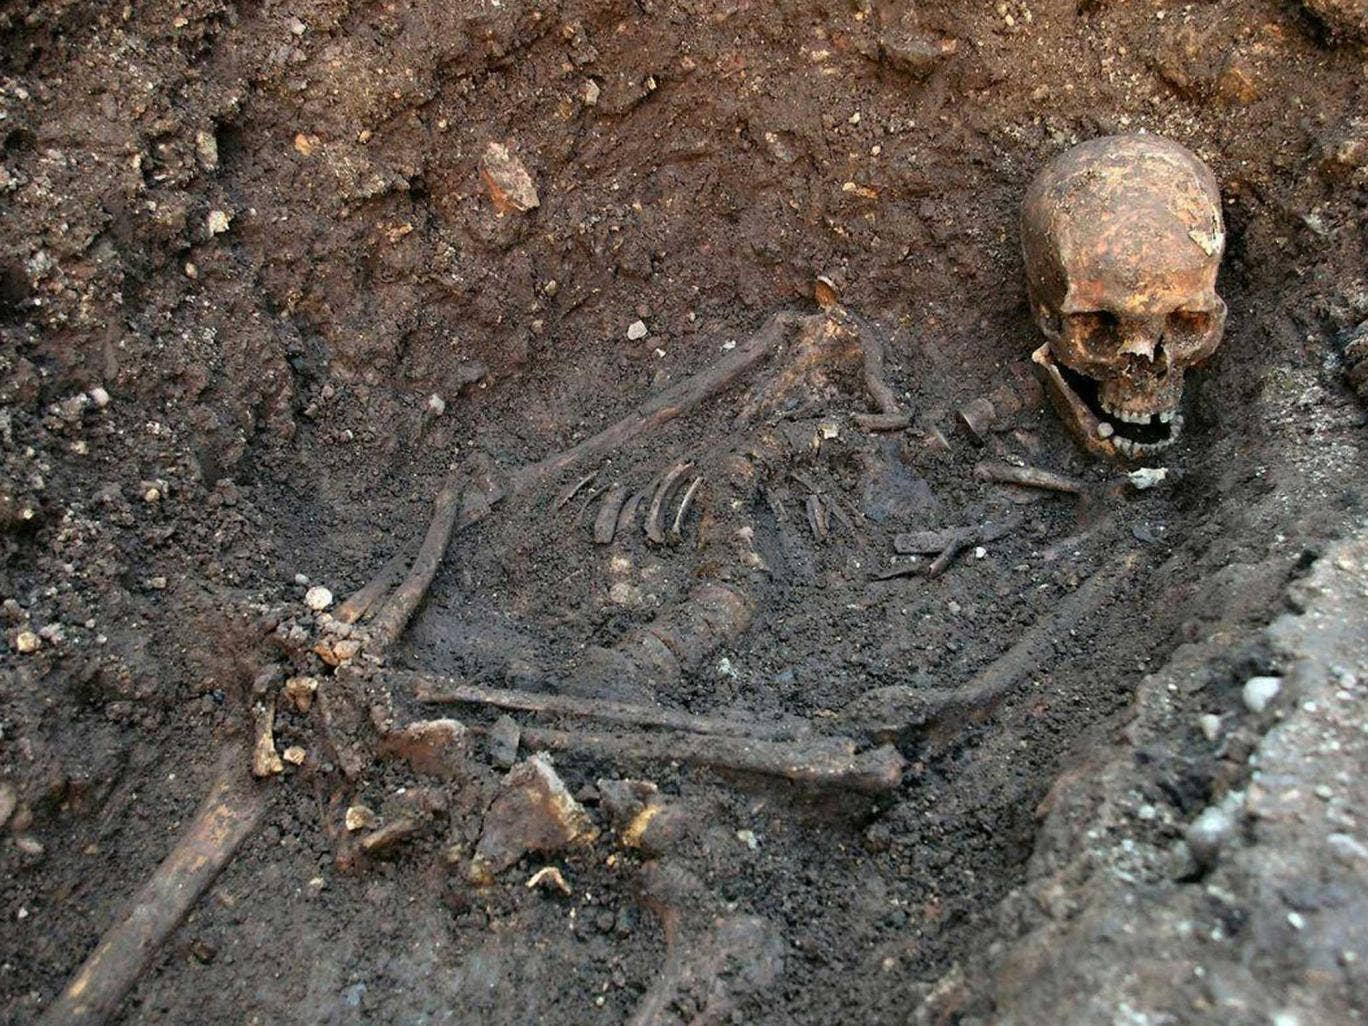 The remains of King Richard III were found in a hastily dug, untidy grave, researchers have revealed